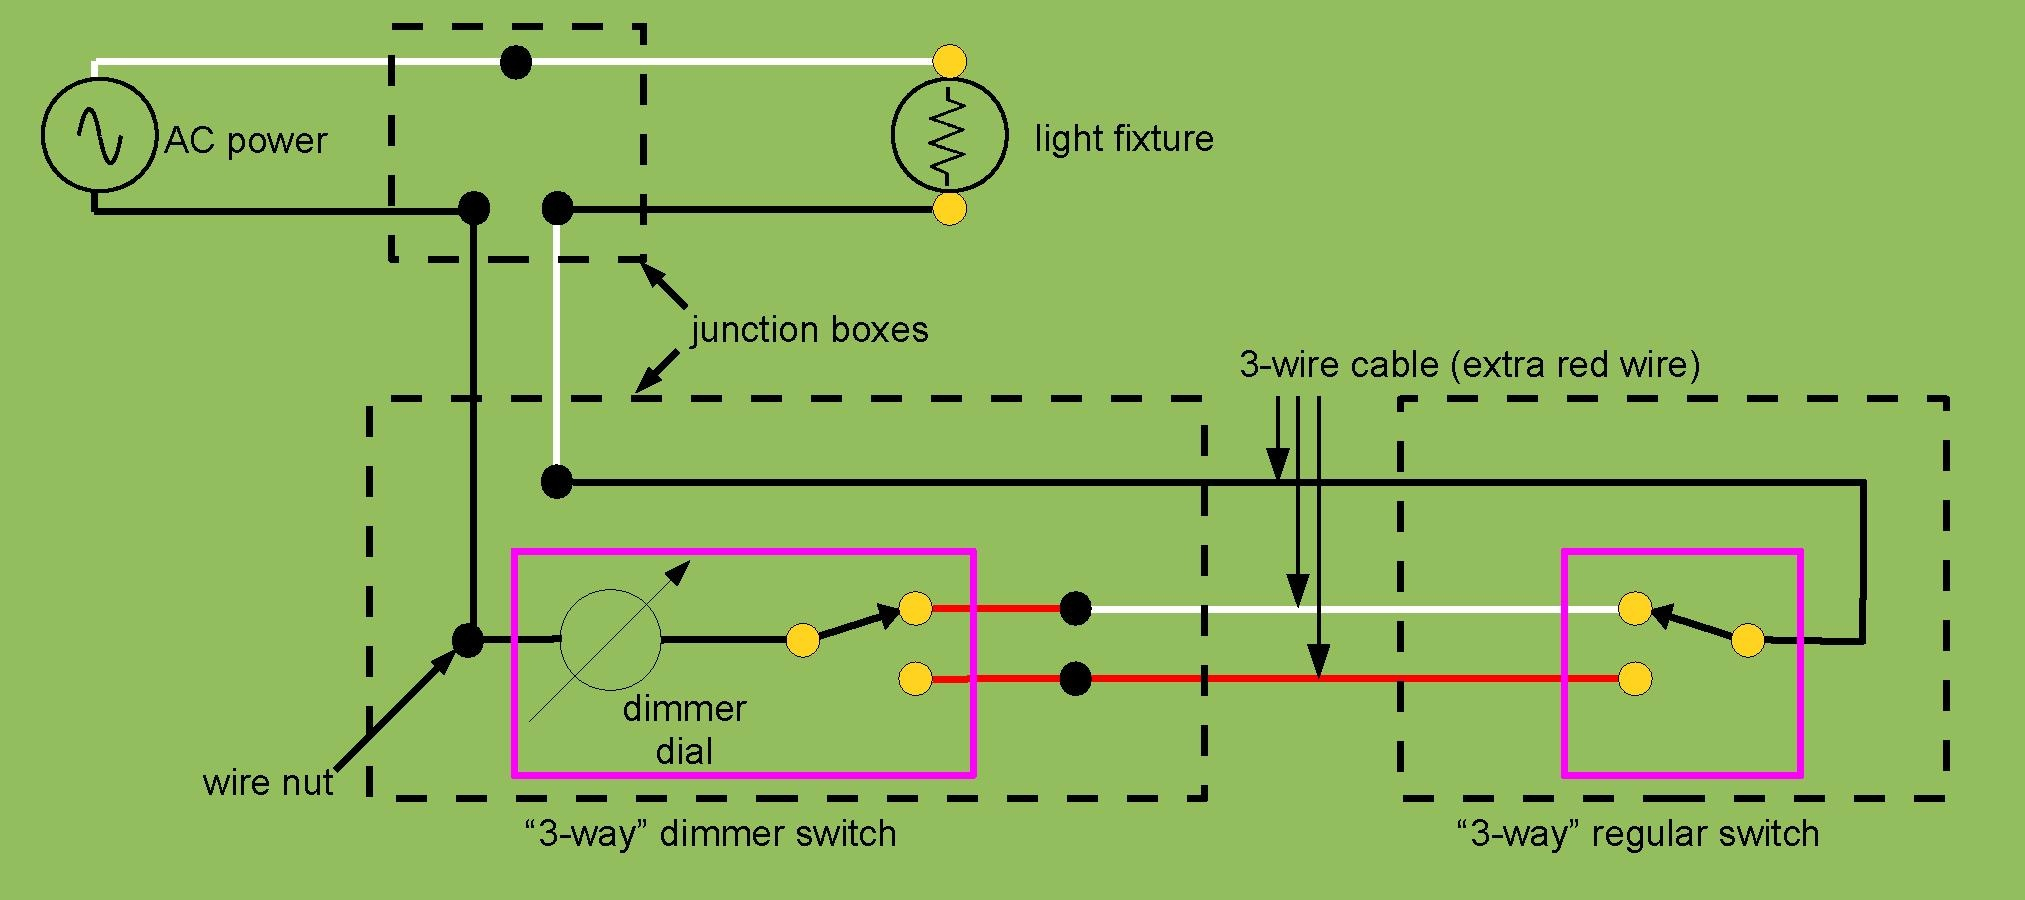 File:3-Way Dimmer Switch Wiring.pdf - Wikimedia Commons - Dimming Switch Wiring Diagram